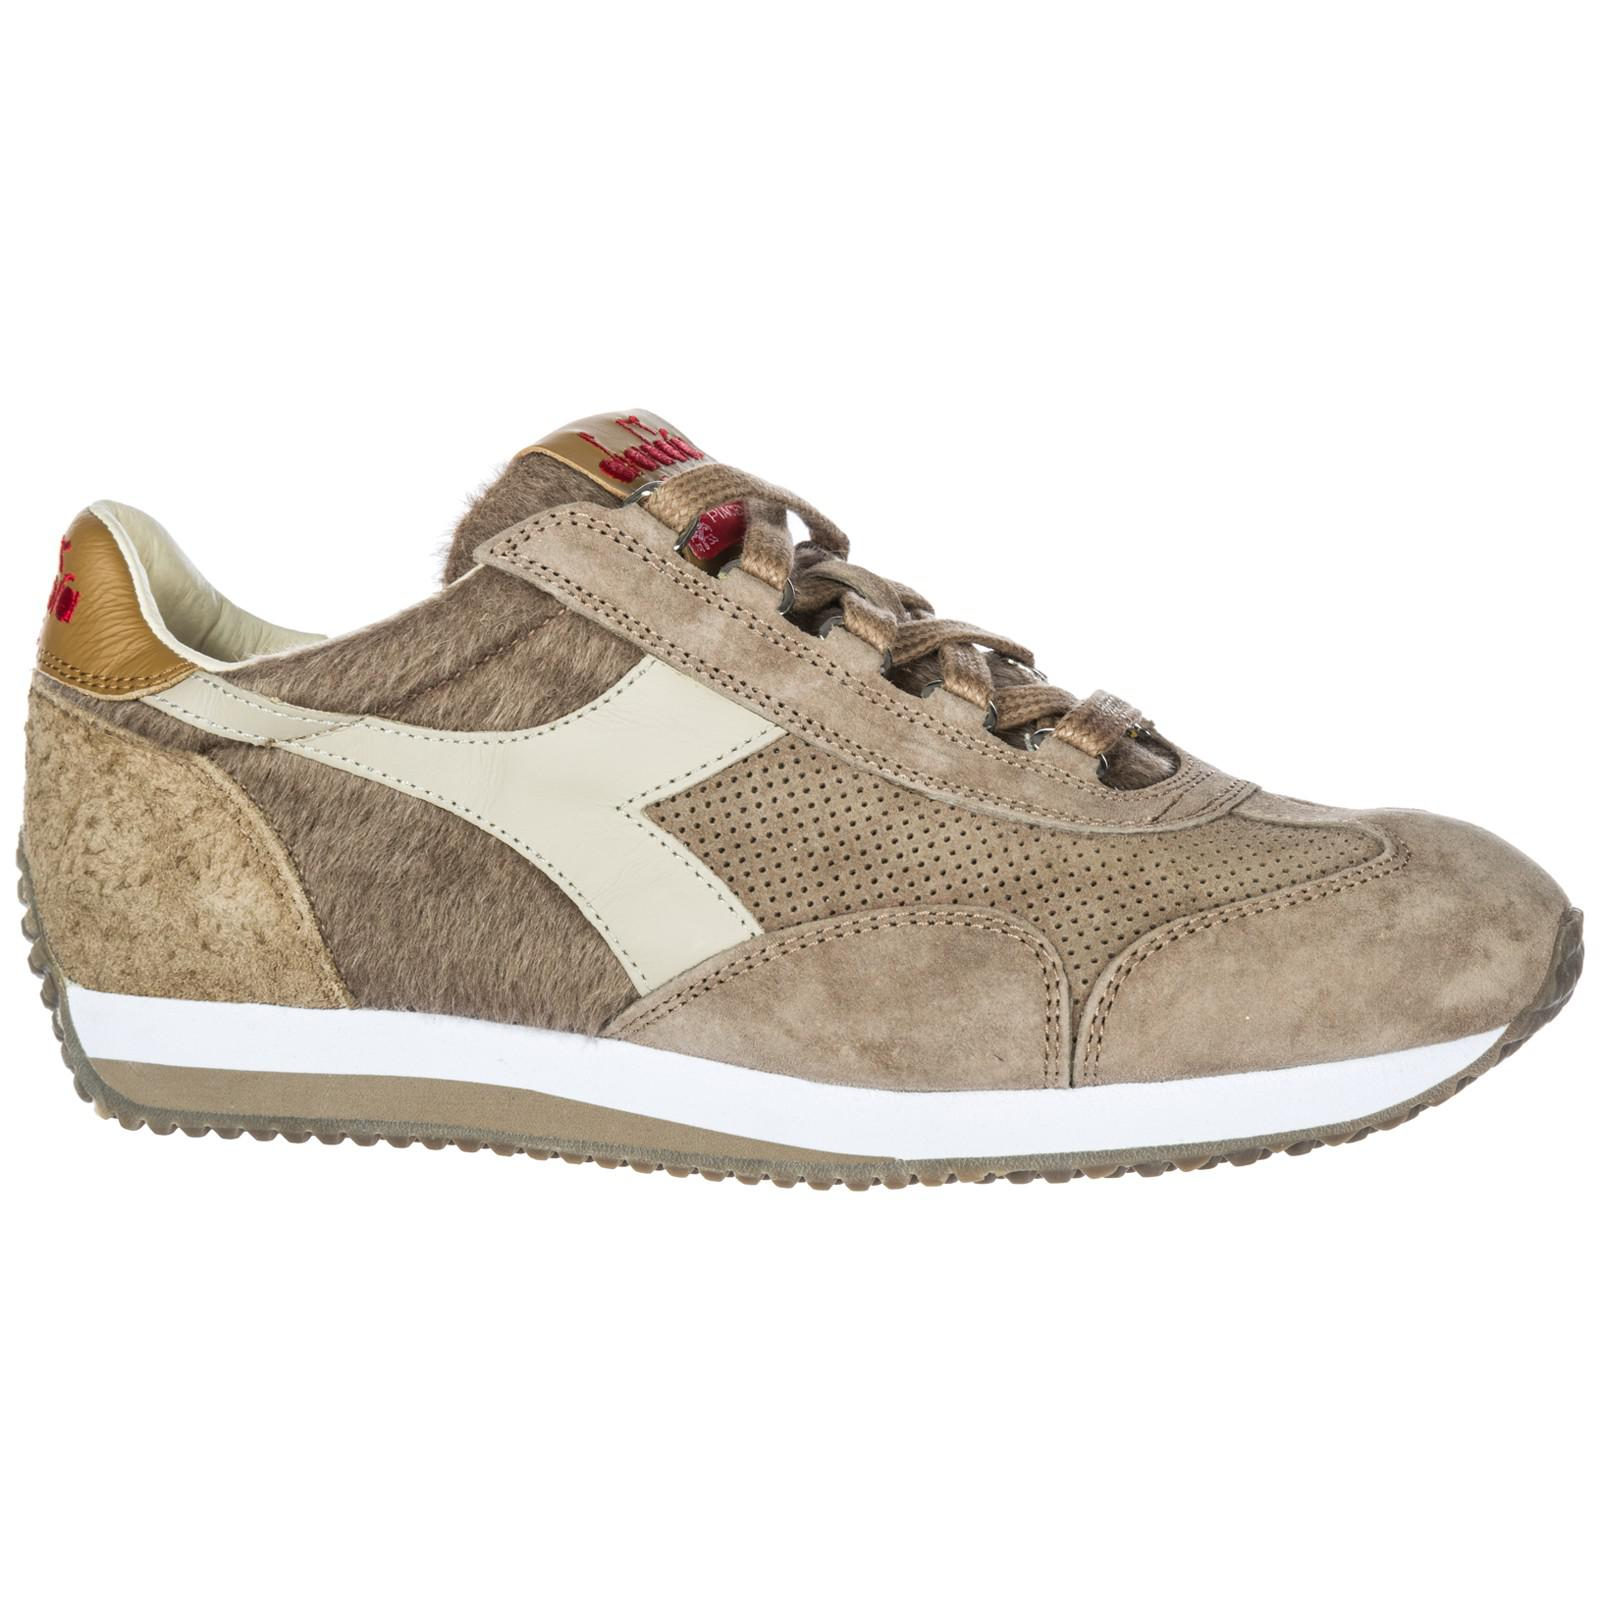 Diadora Shoes Suede Trainers Sneakers Equipe in Brown for Men - Lyst